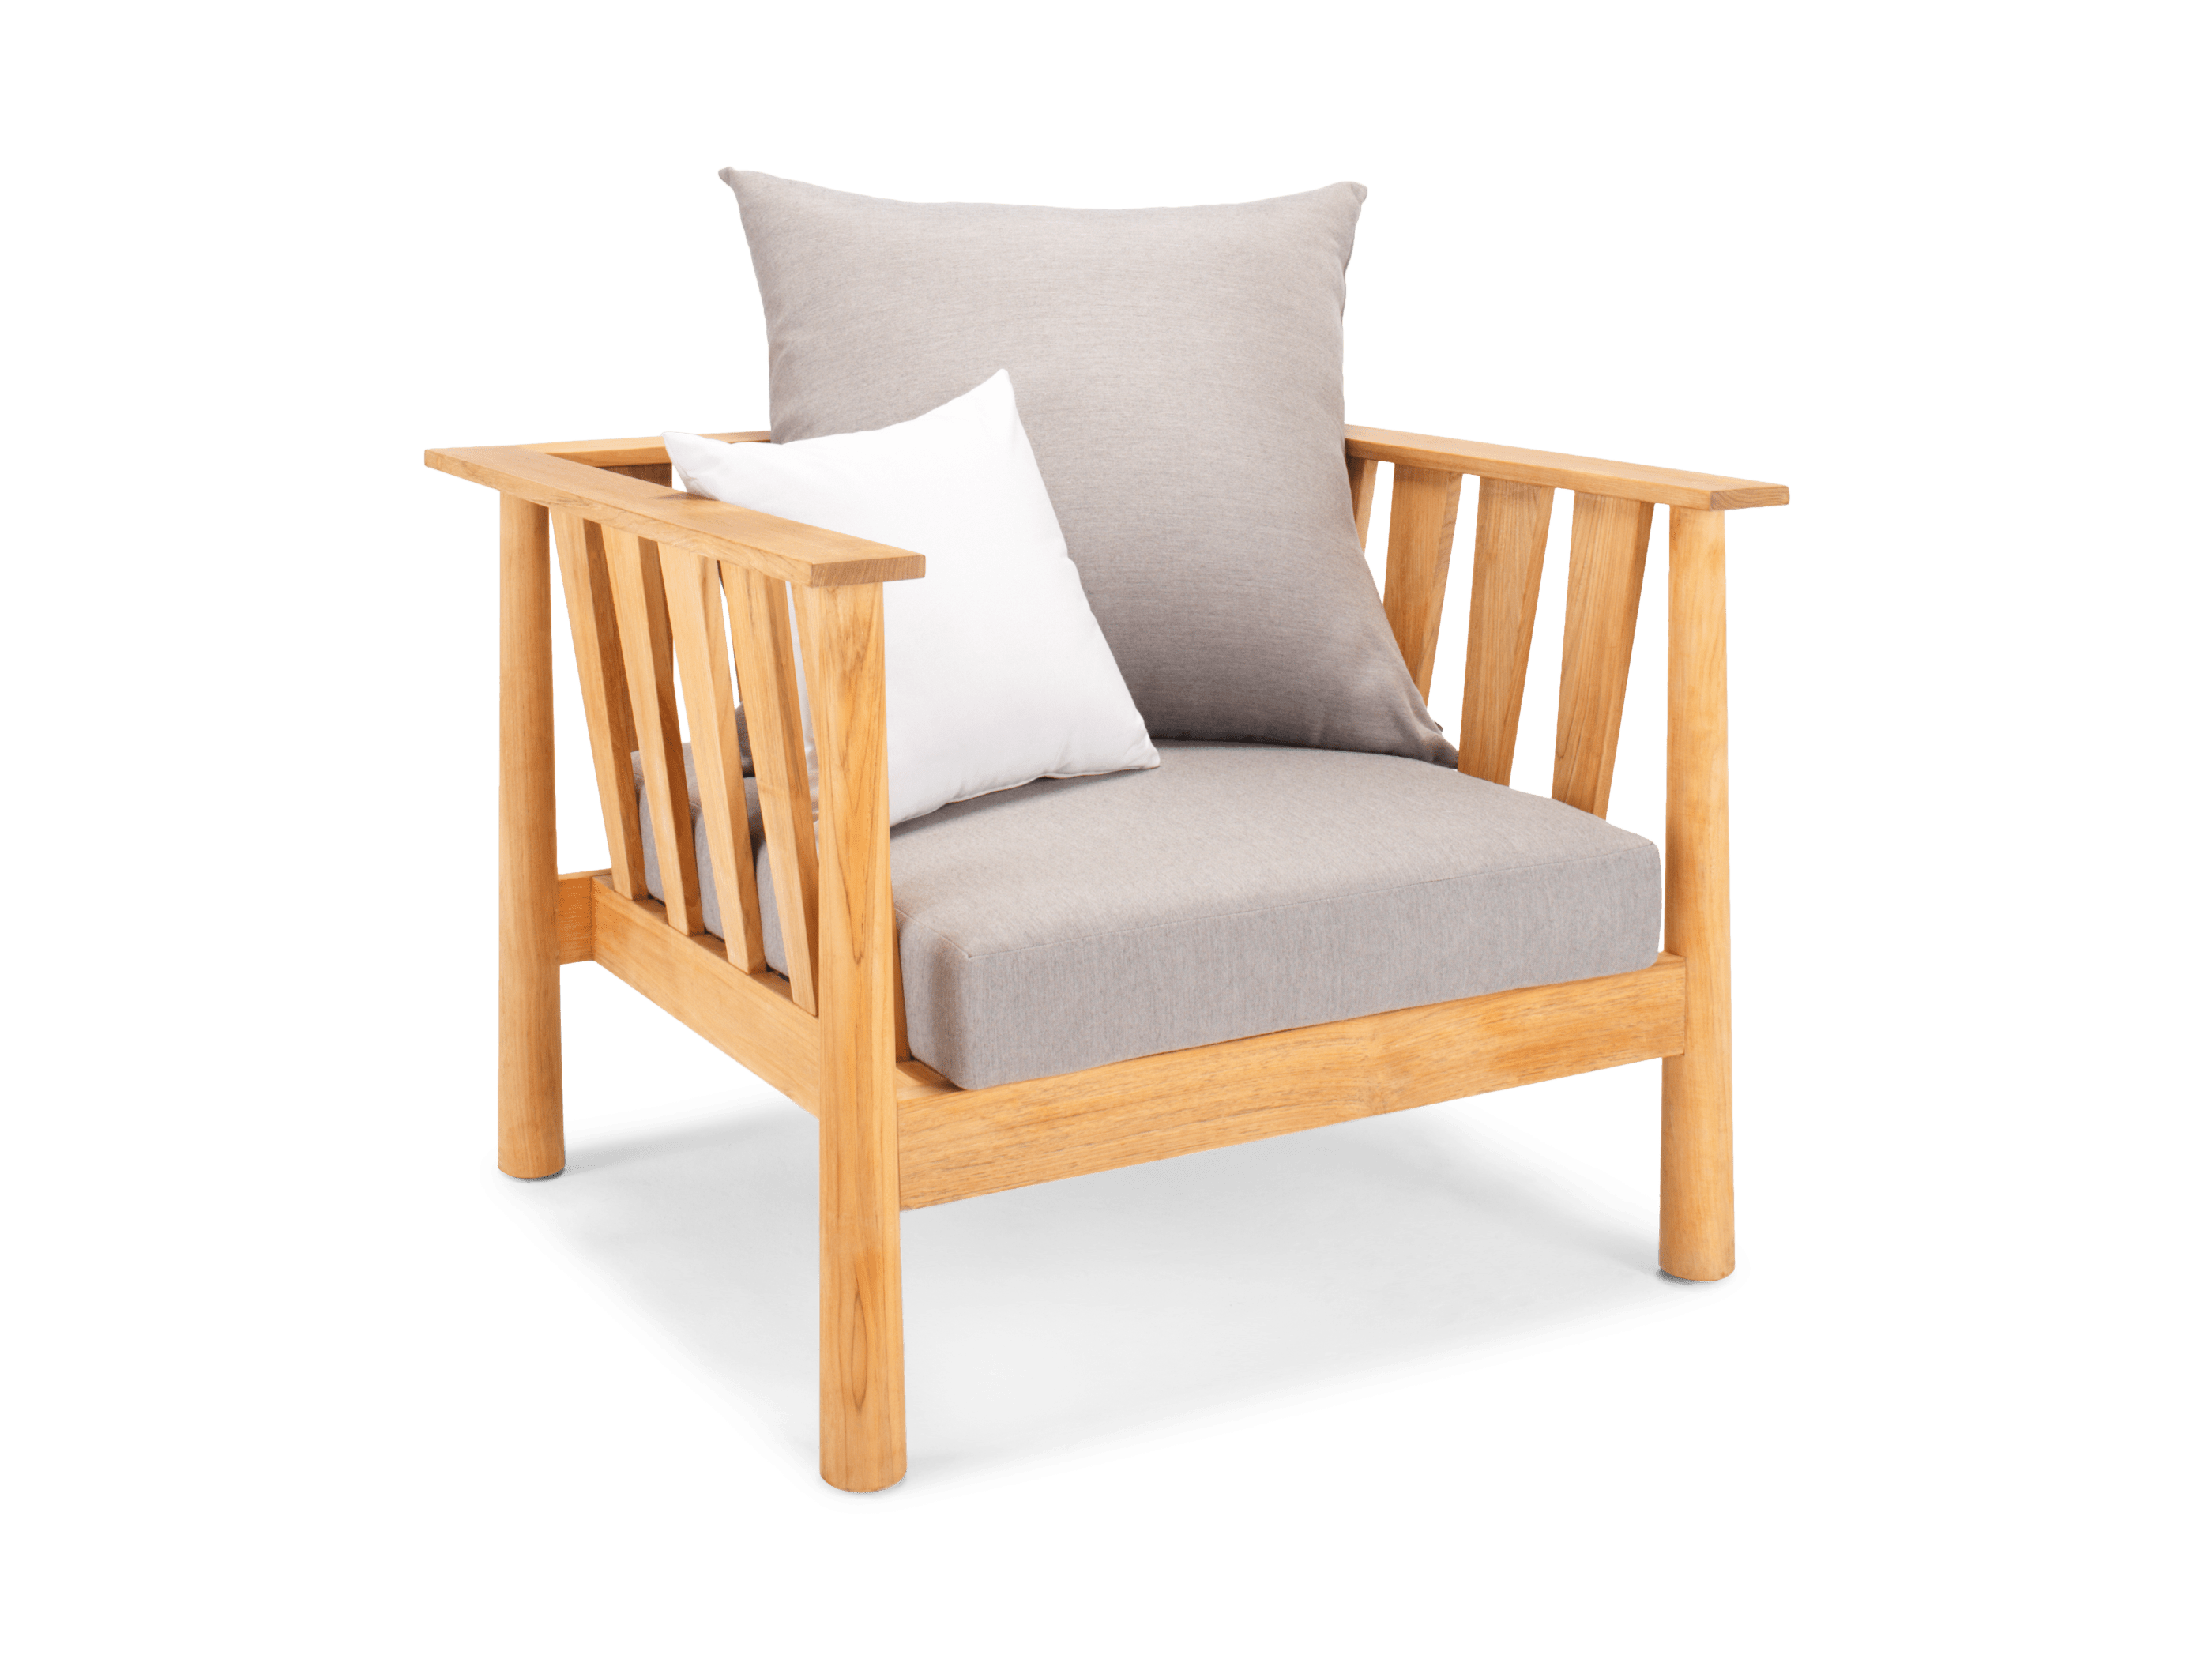 outdoor chair fabric office computer chairs malua lounge designer furniture by eco basics